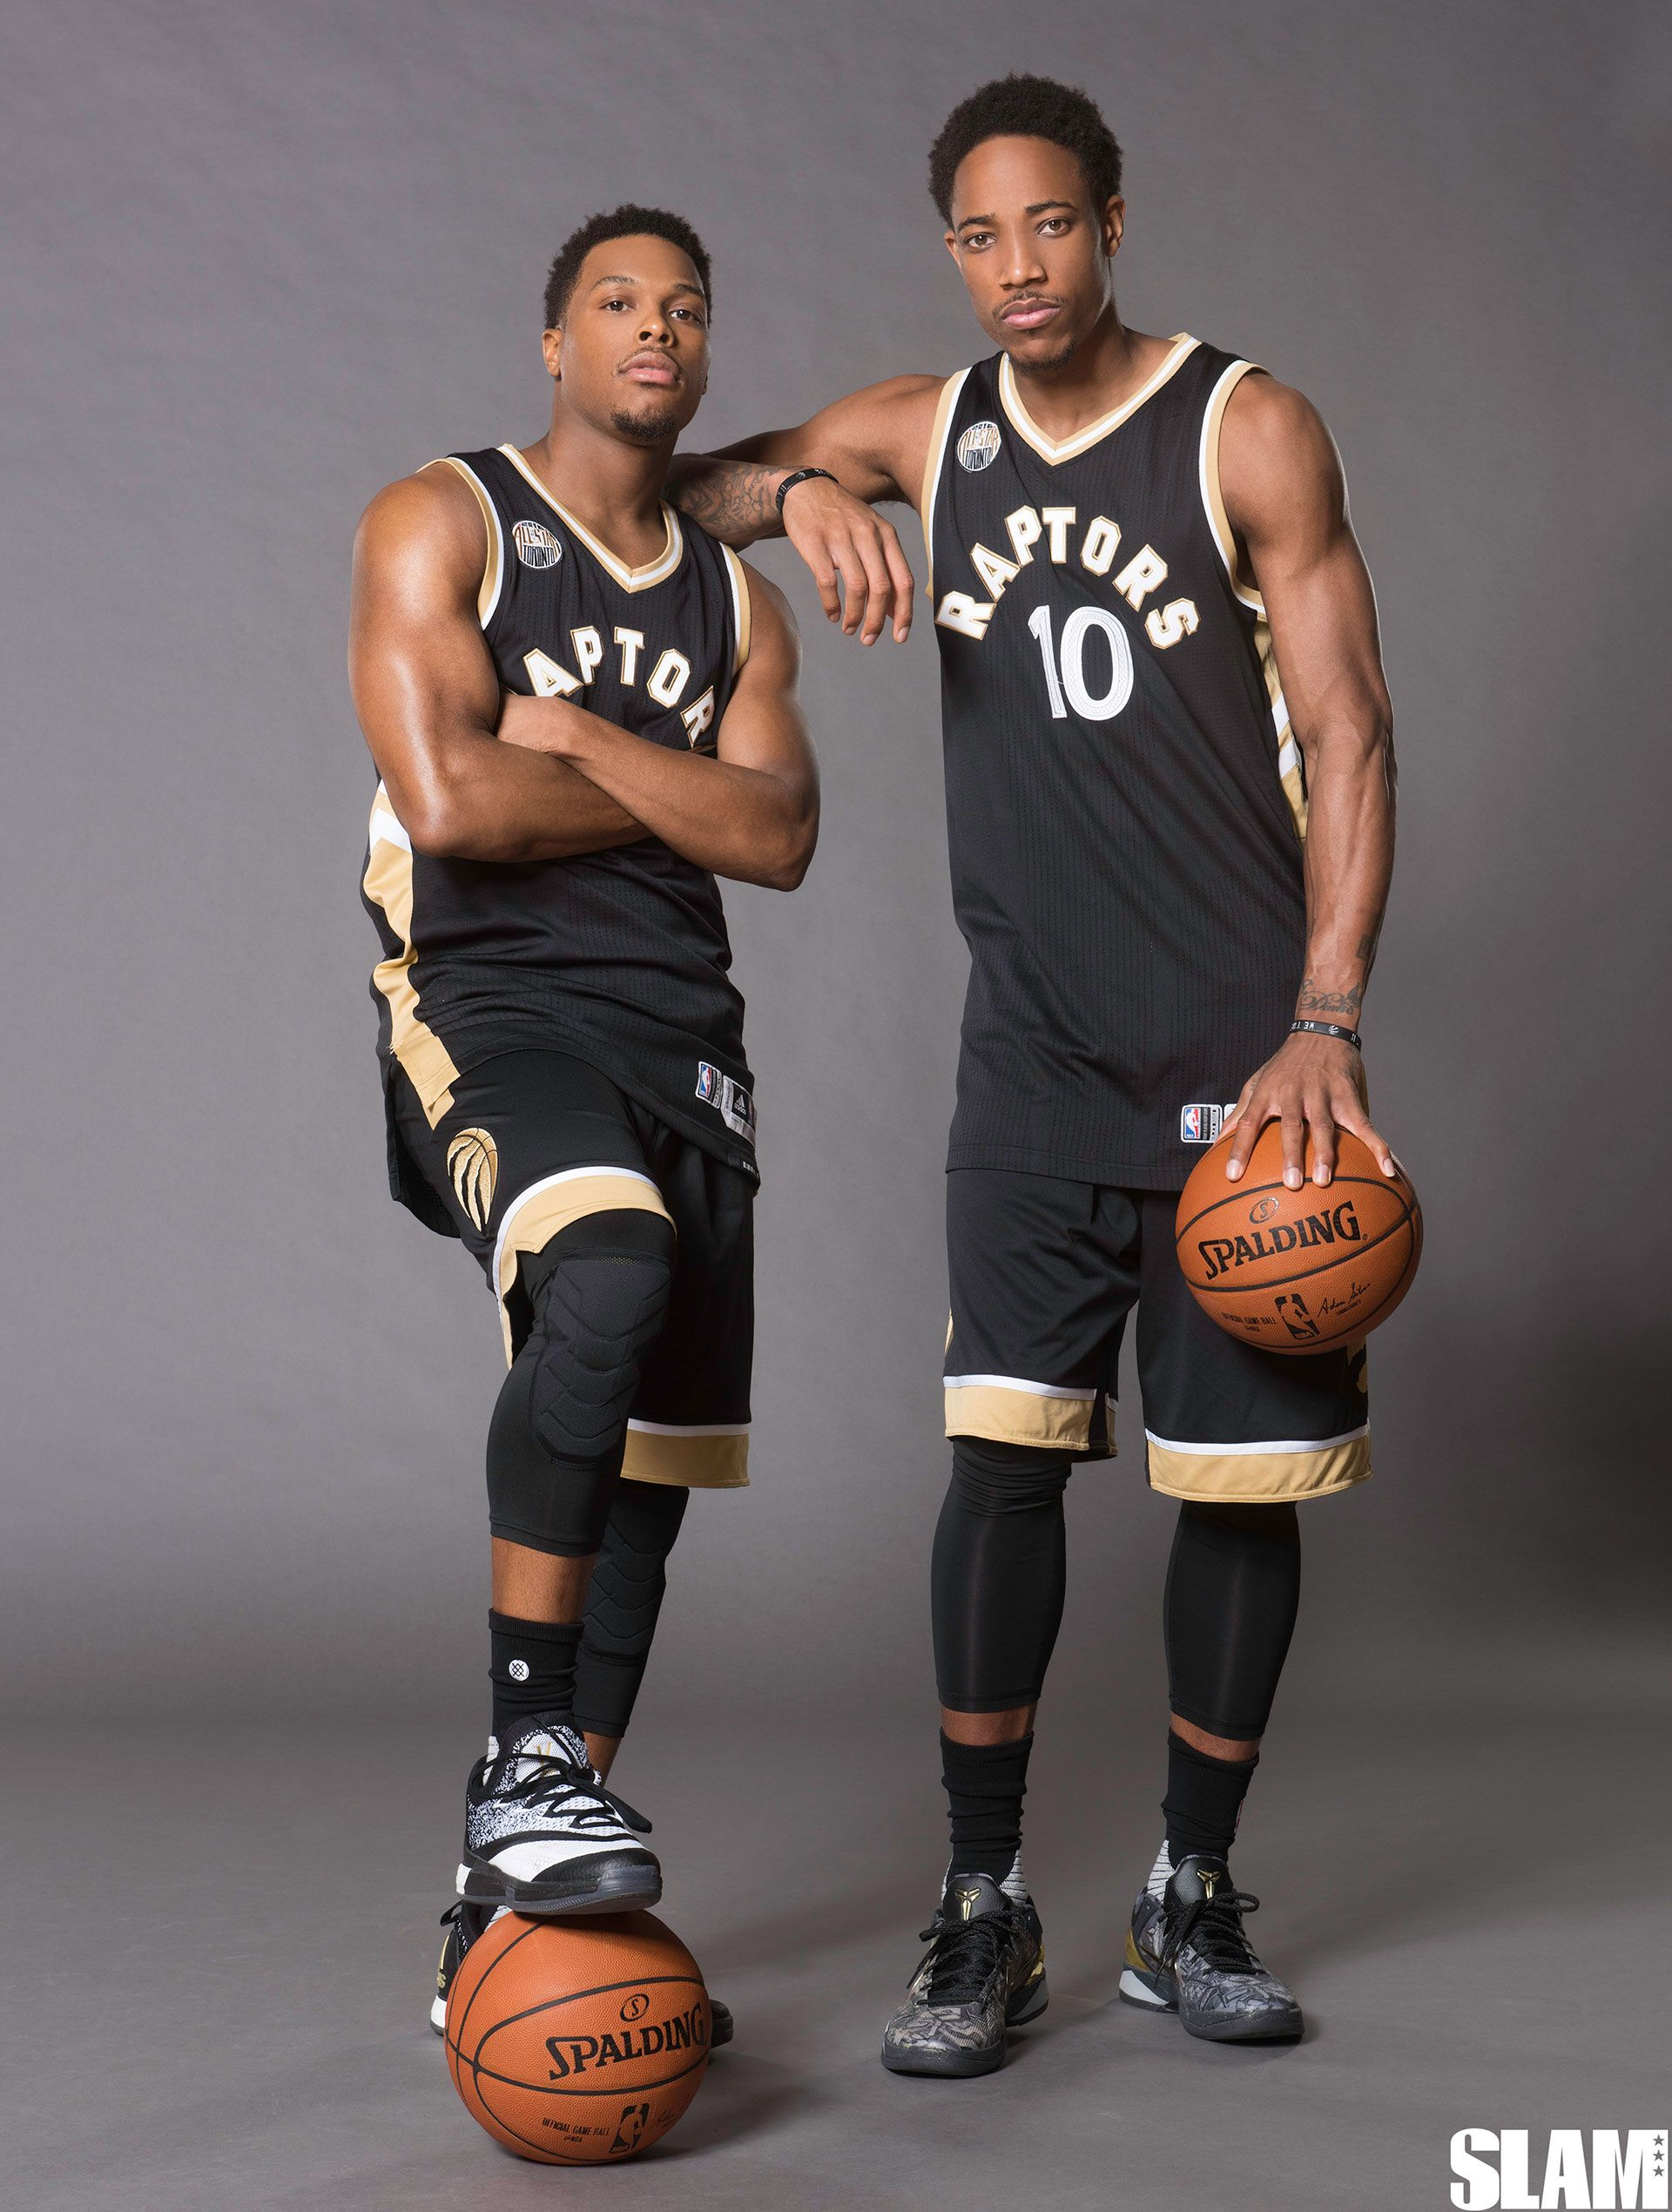 d99f564a511 Kyle Lowry and DeMar DeRozan | NBA is Sports Life | Kyle lowry ...